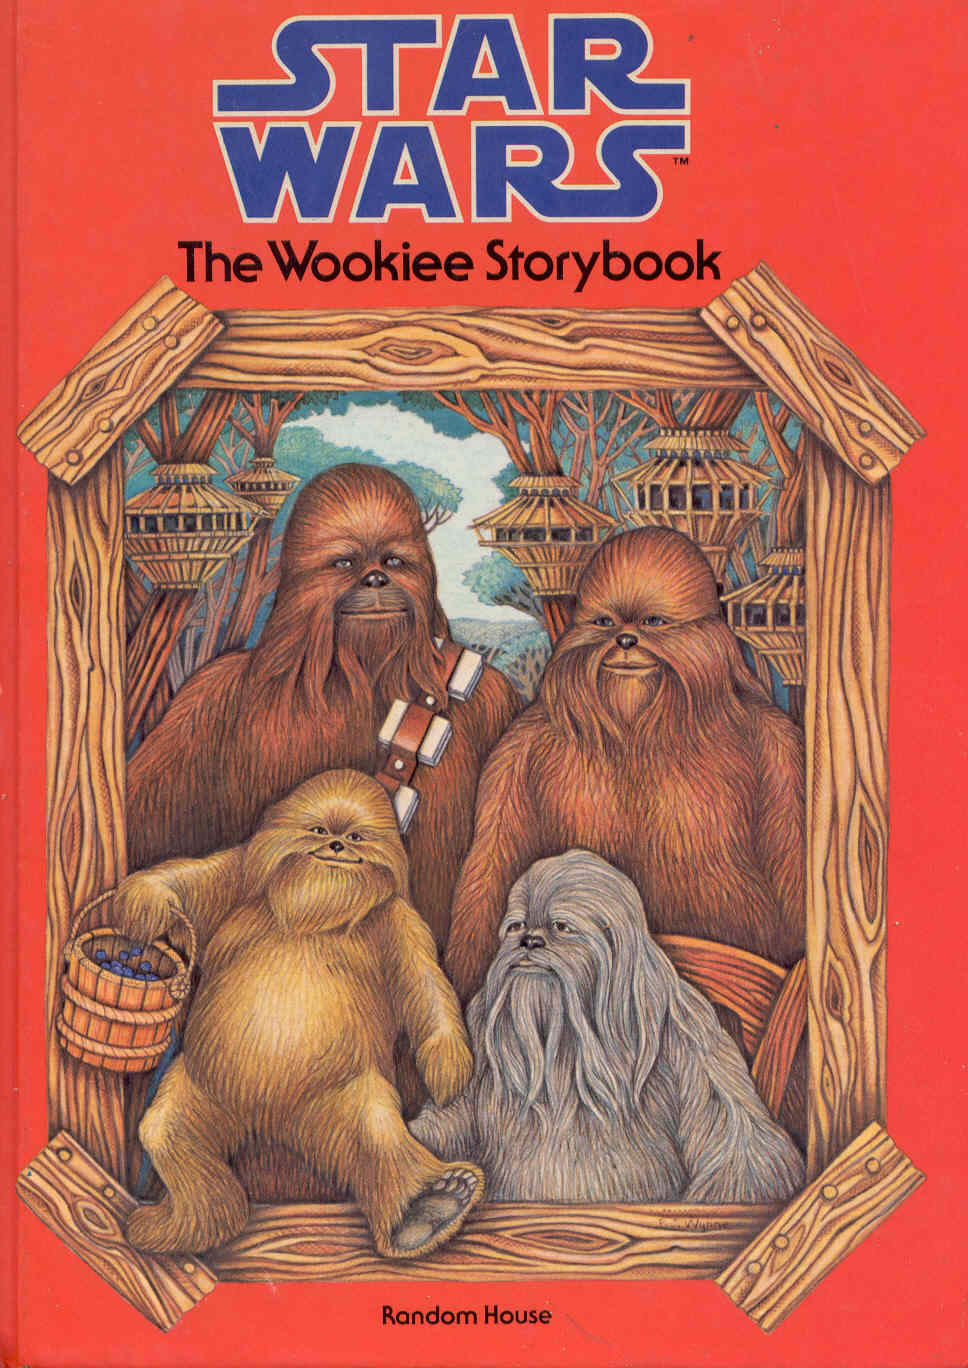 Star Wars: The Wookiee Storybook